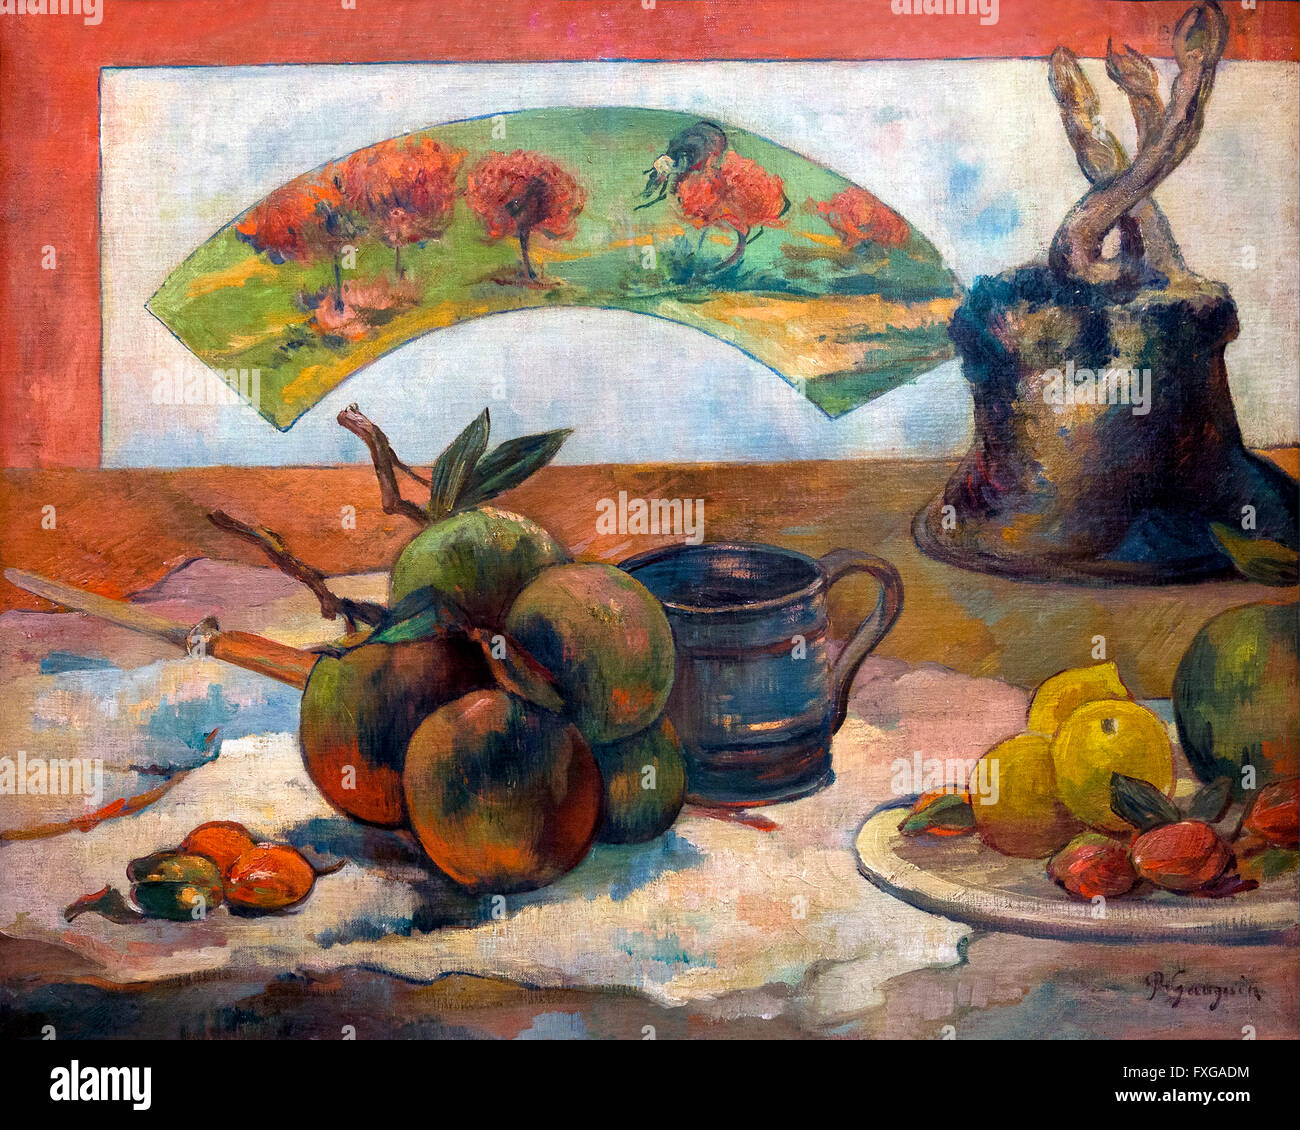 La nature morte avec ventilateur, Nature Morte a l'eventail, de Paul Gauguin, 1889, Musée d'Orsay, Photo Stock